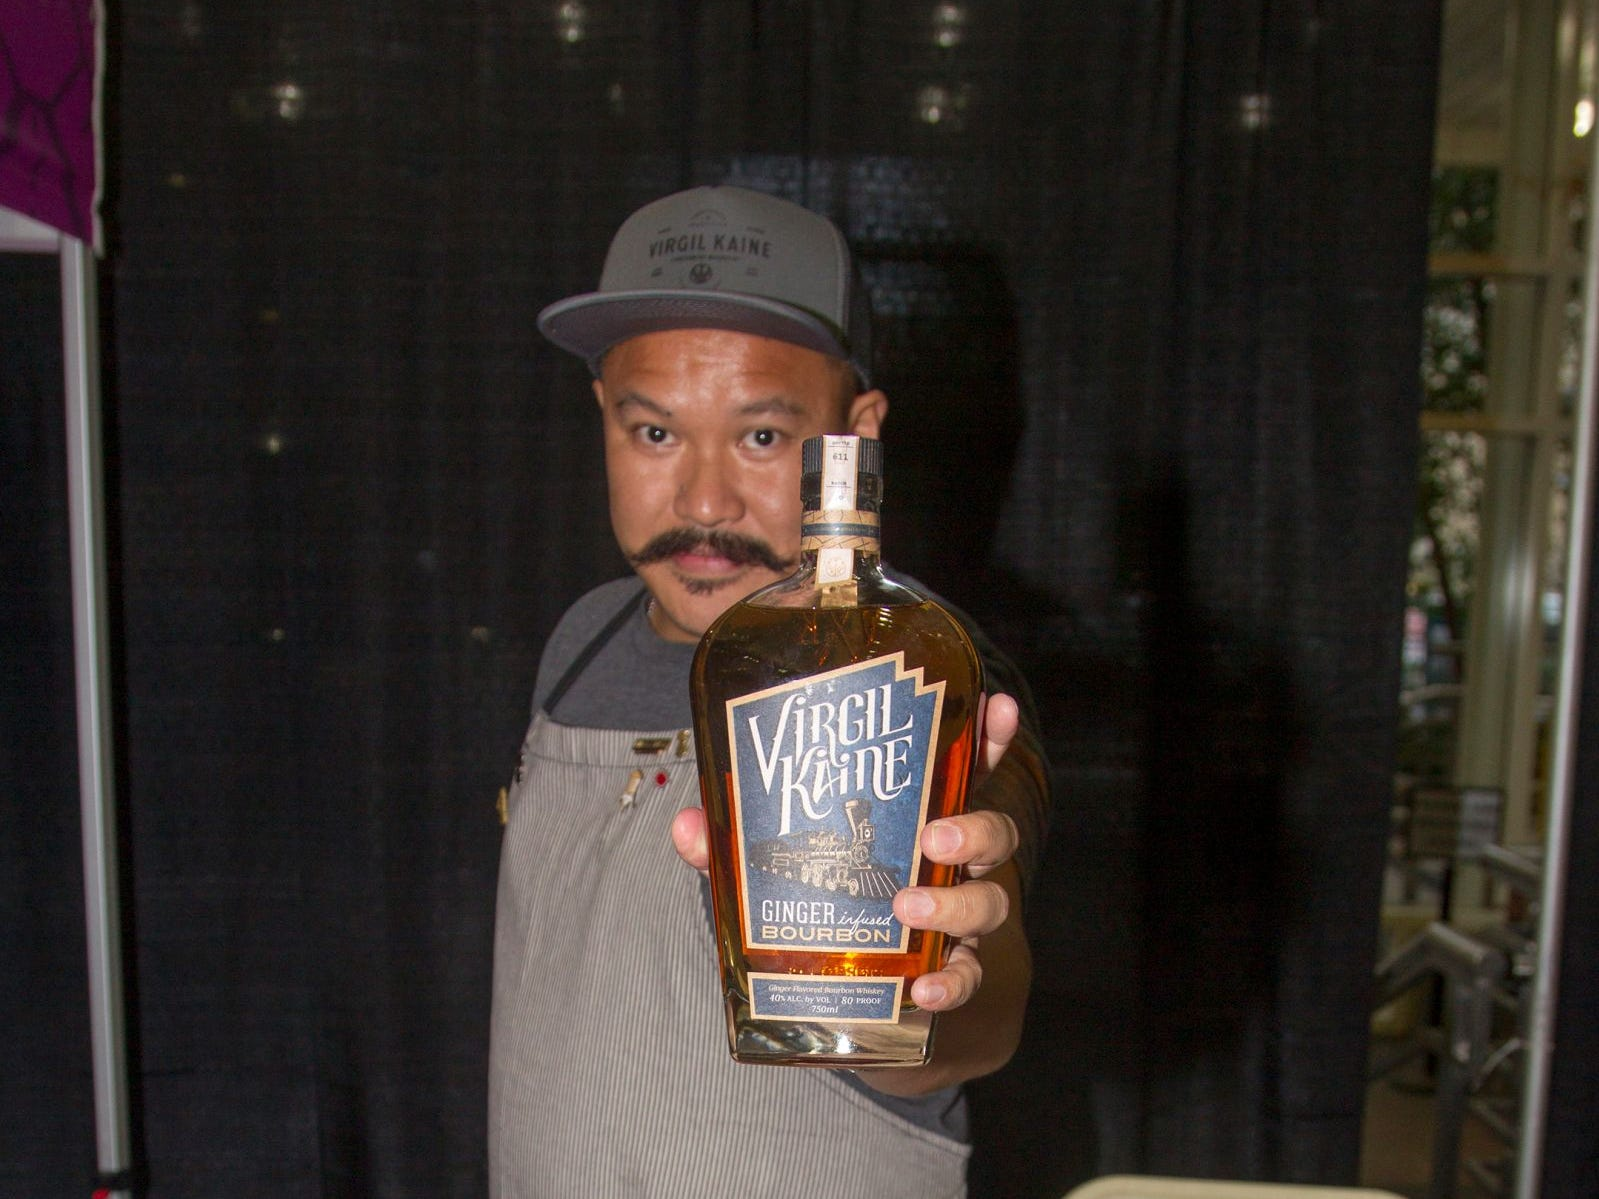 Virgil Kaine - Red Dacquel. Jersey City Craft Distillery Fest at the Harborside Atrium featured more than 100 styles of spirits. Guests had the chance to taste craft-distilled spirits from moonshine, rum, cognac, whiskey, vodka, gin, tequila and more. 09/08/2018